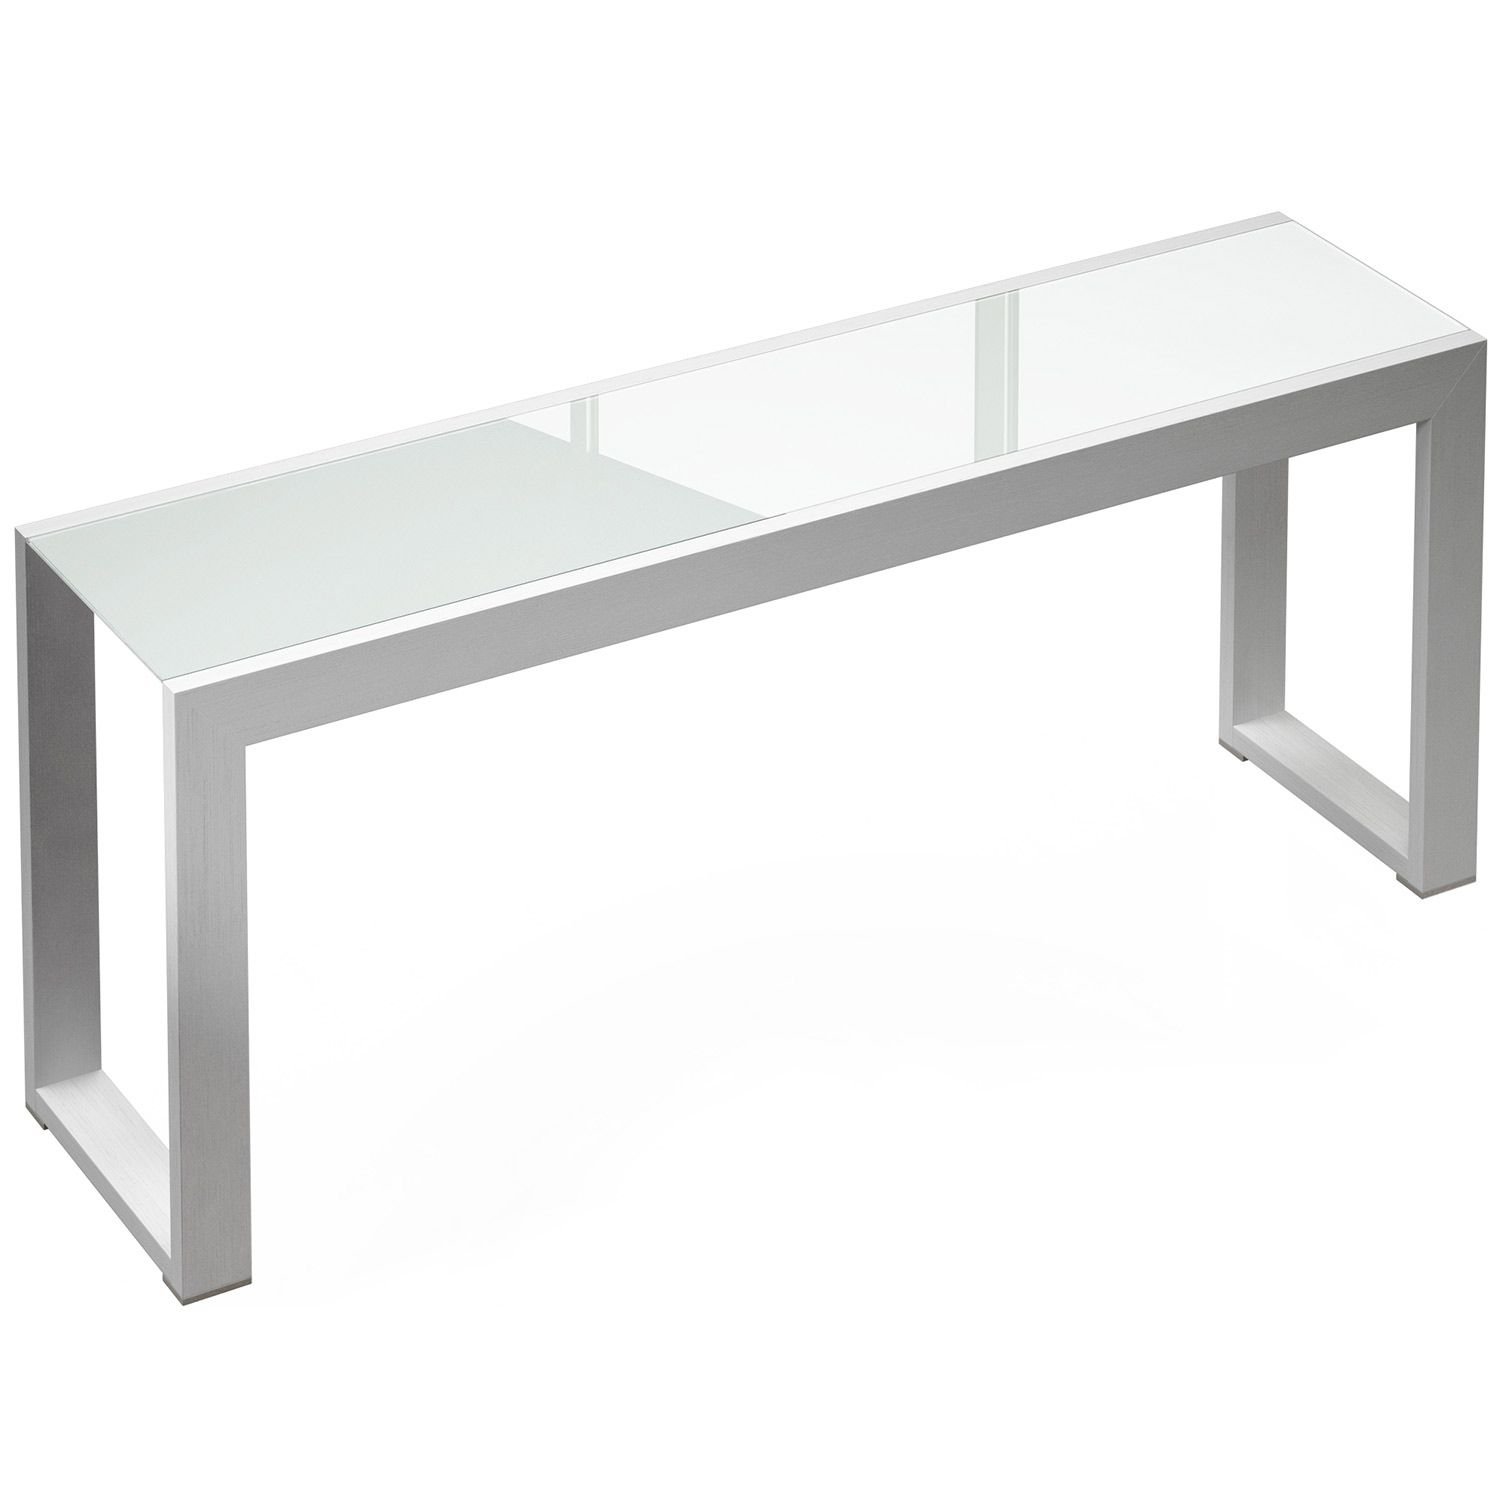 Modloft hanover white glass on white oak console table modloft hanover white glass on white oak console table mlapd134pamiv6 geotapseo Choice Image